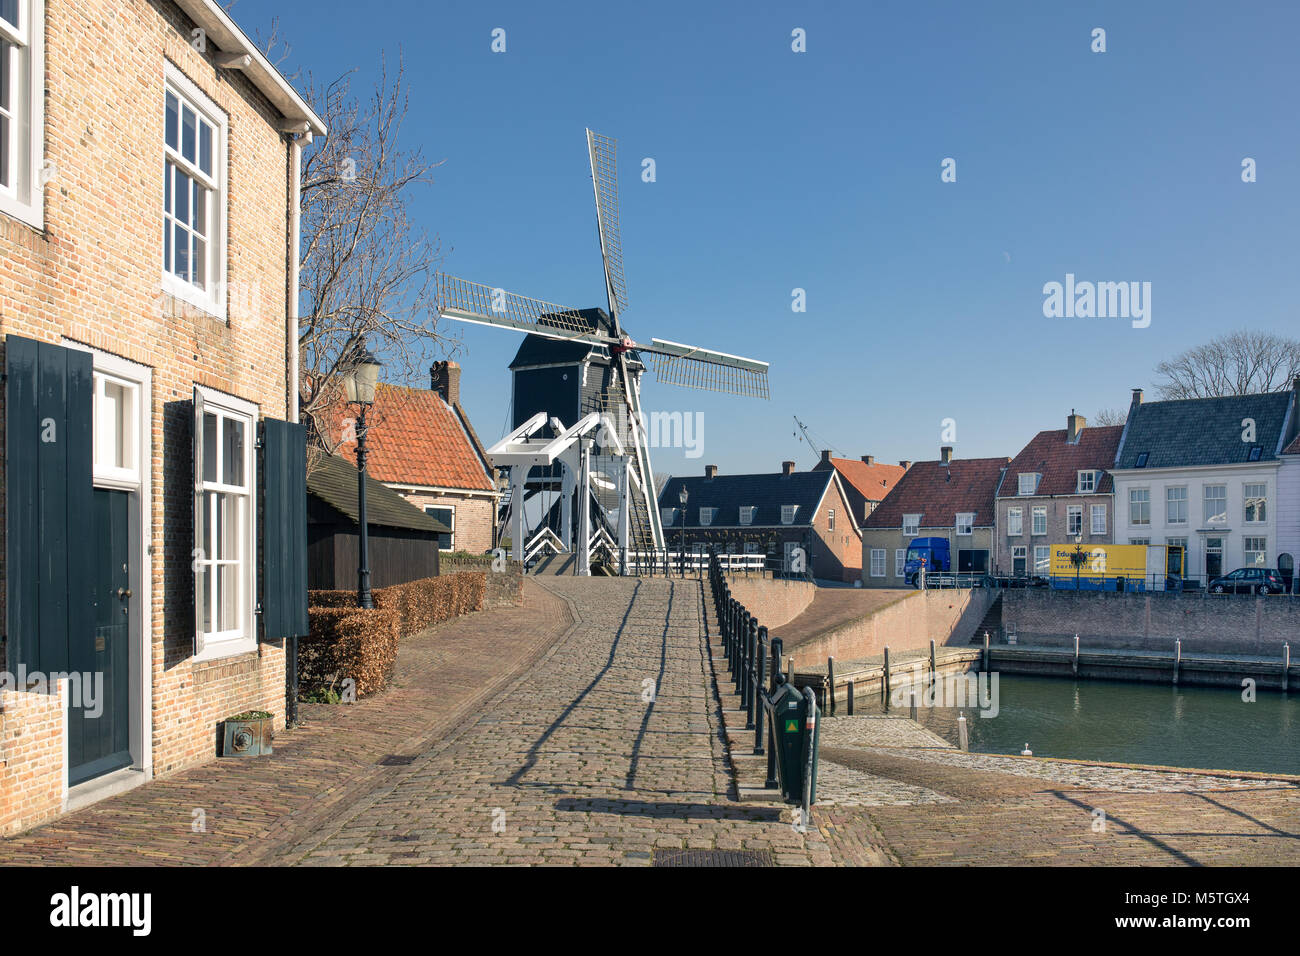 Heusden, Holland, cityscape with a harbour, a quay and an old, vintage, wooden windmill - Stock Image